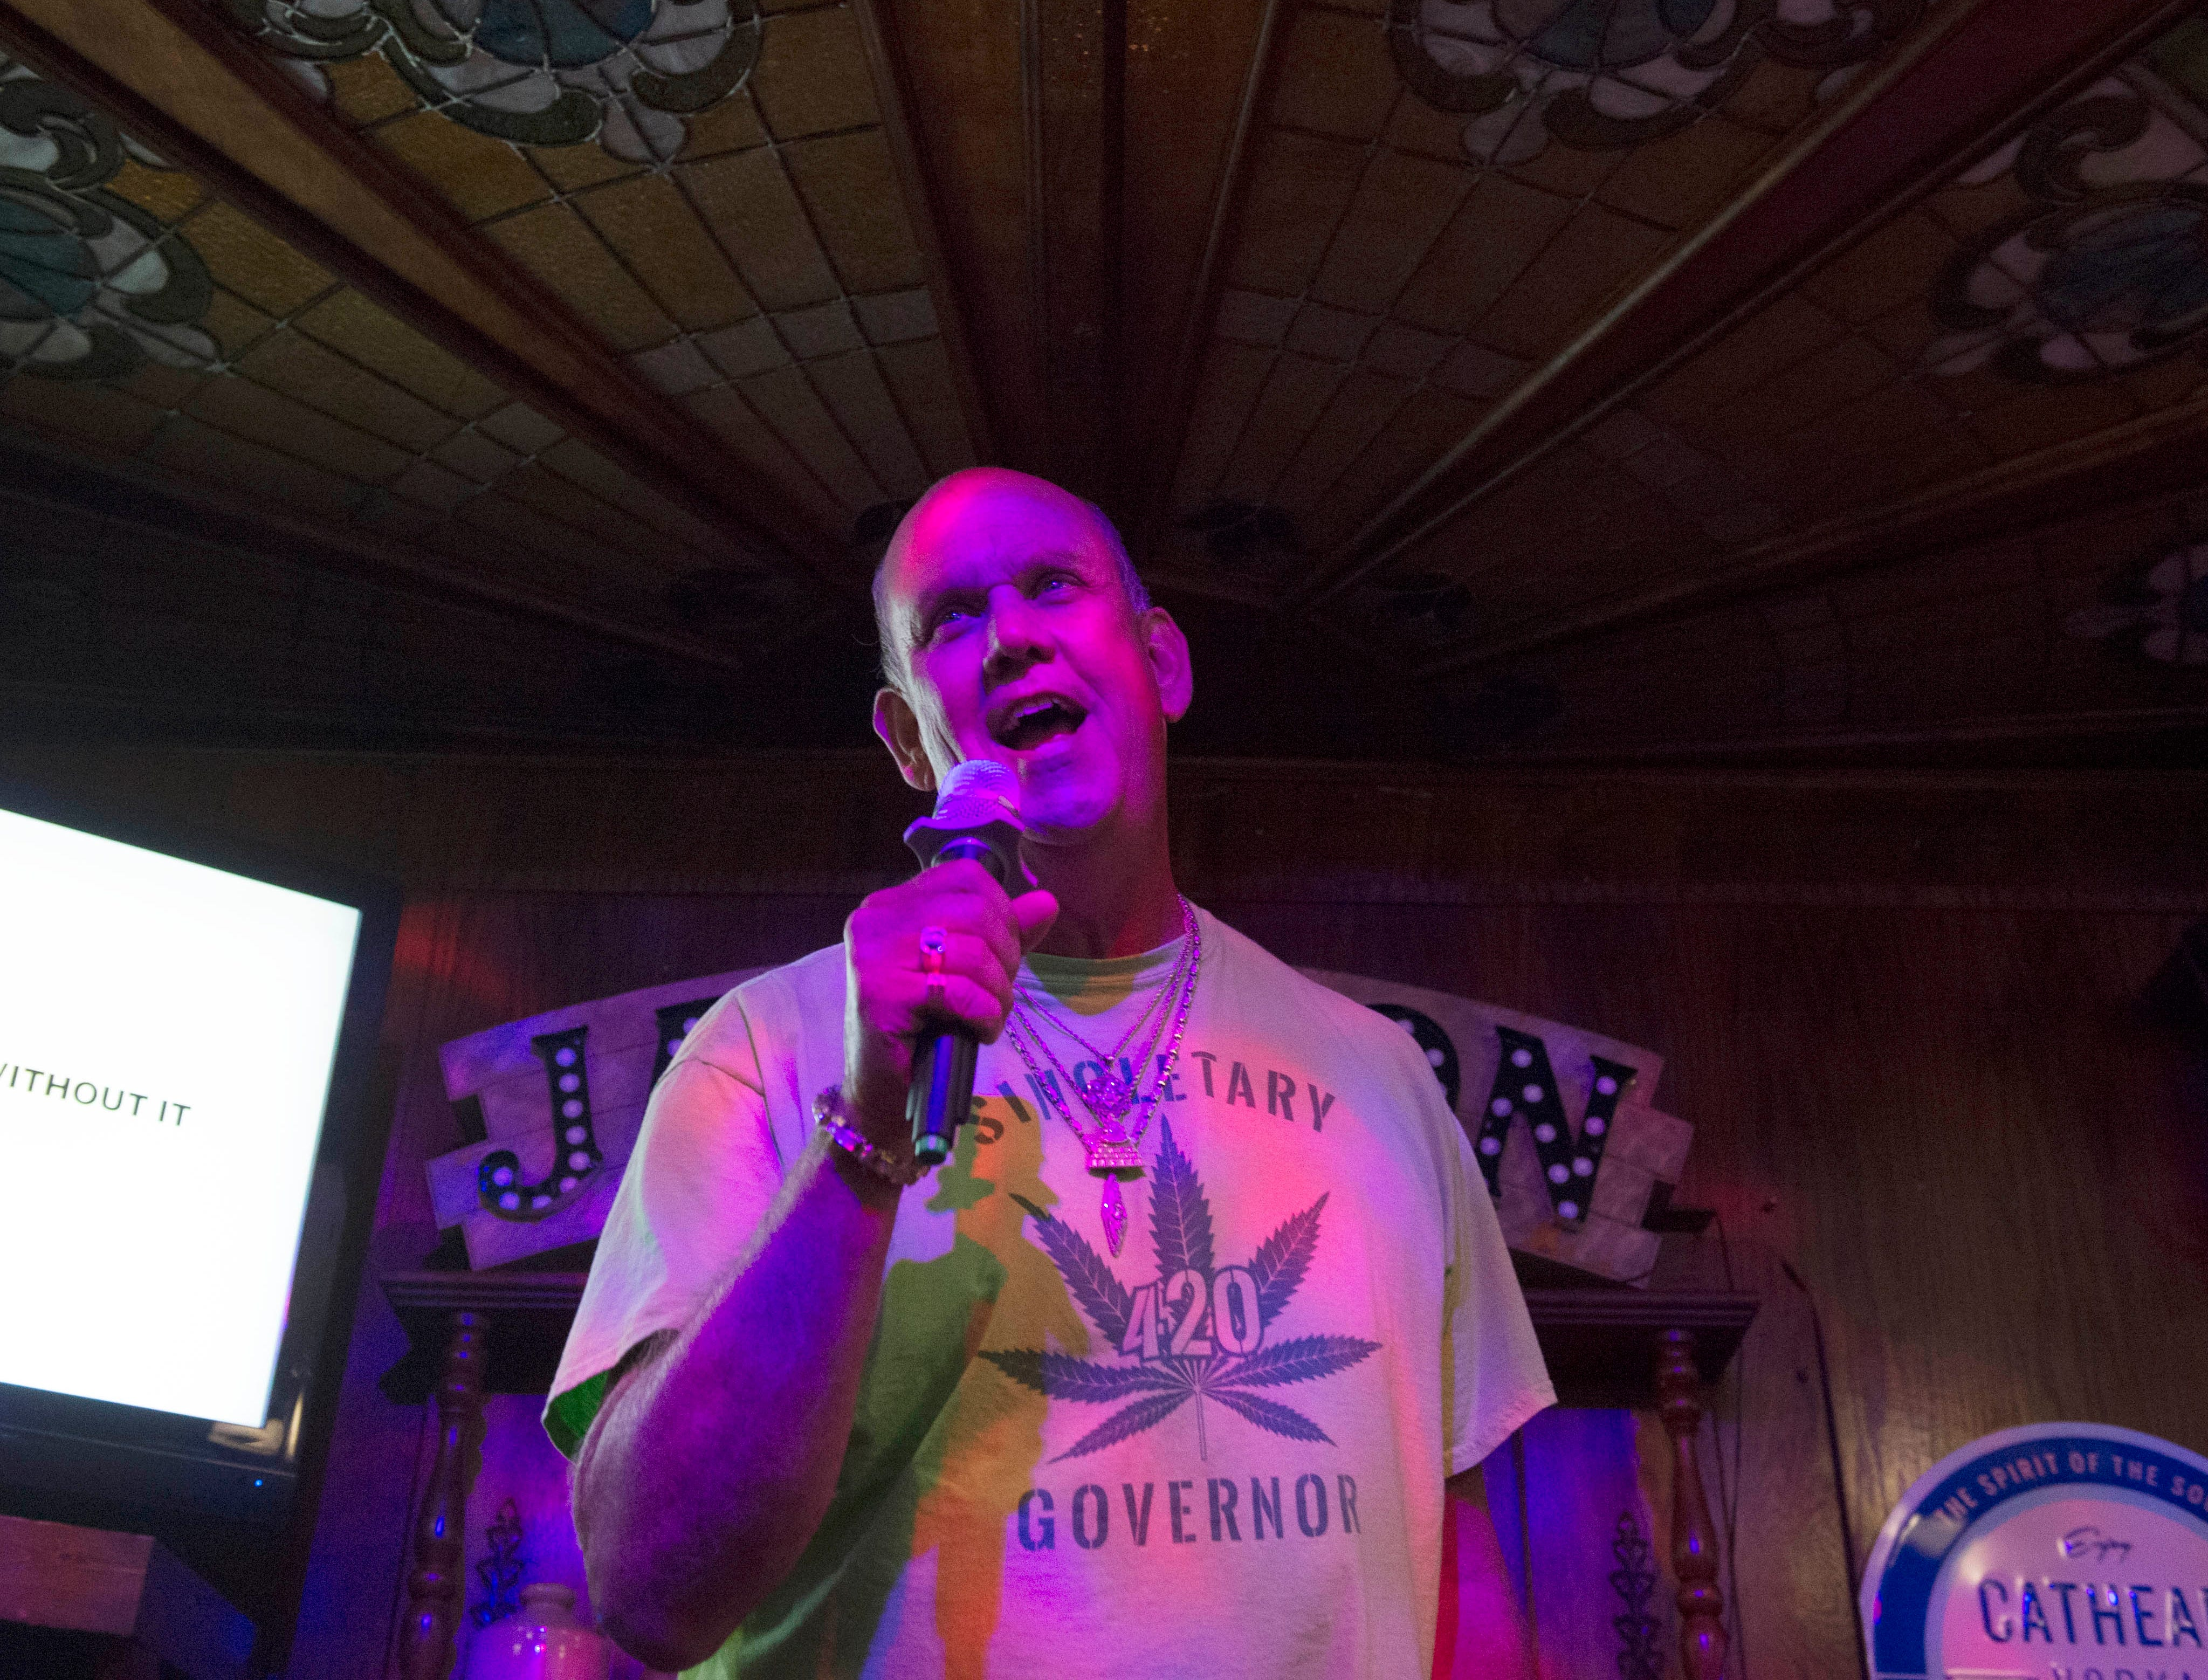 Mississippi 2019 independent gubernatorial candidate David Singletary performs during karaoke night at Fenian's Pub in the Belhaven Heights neighborhood of Jackson, Miss. on Monday night. Singletary's campaign platform is primarily based around legalization of Marijuana in Mississippi. Monday, April 30, 2019.